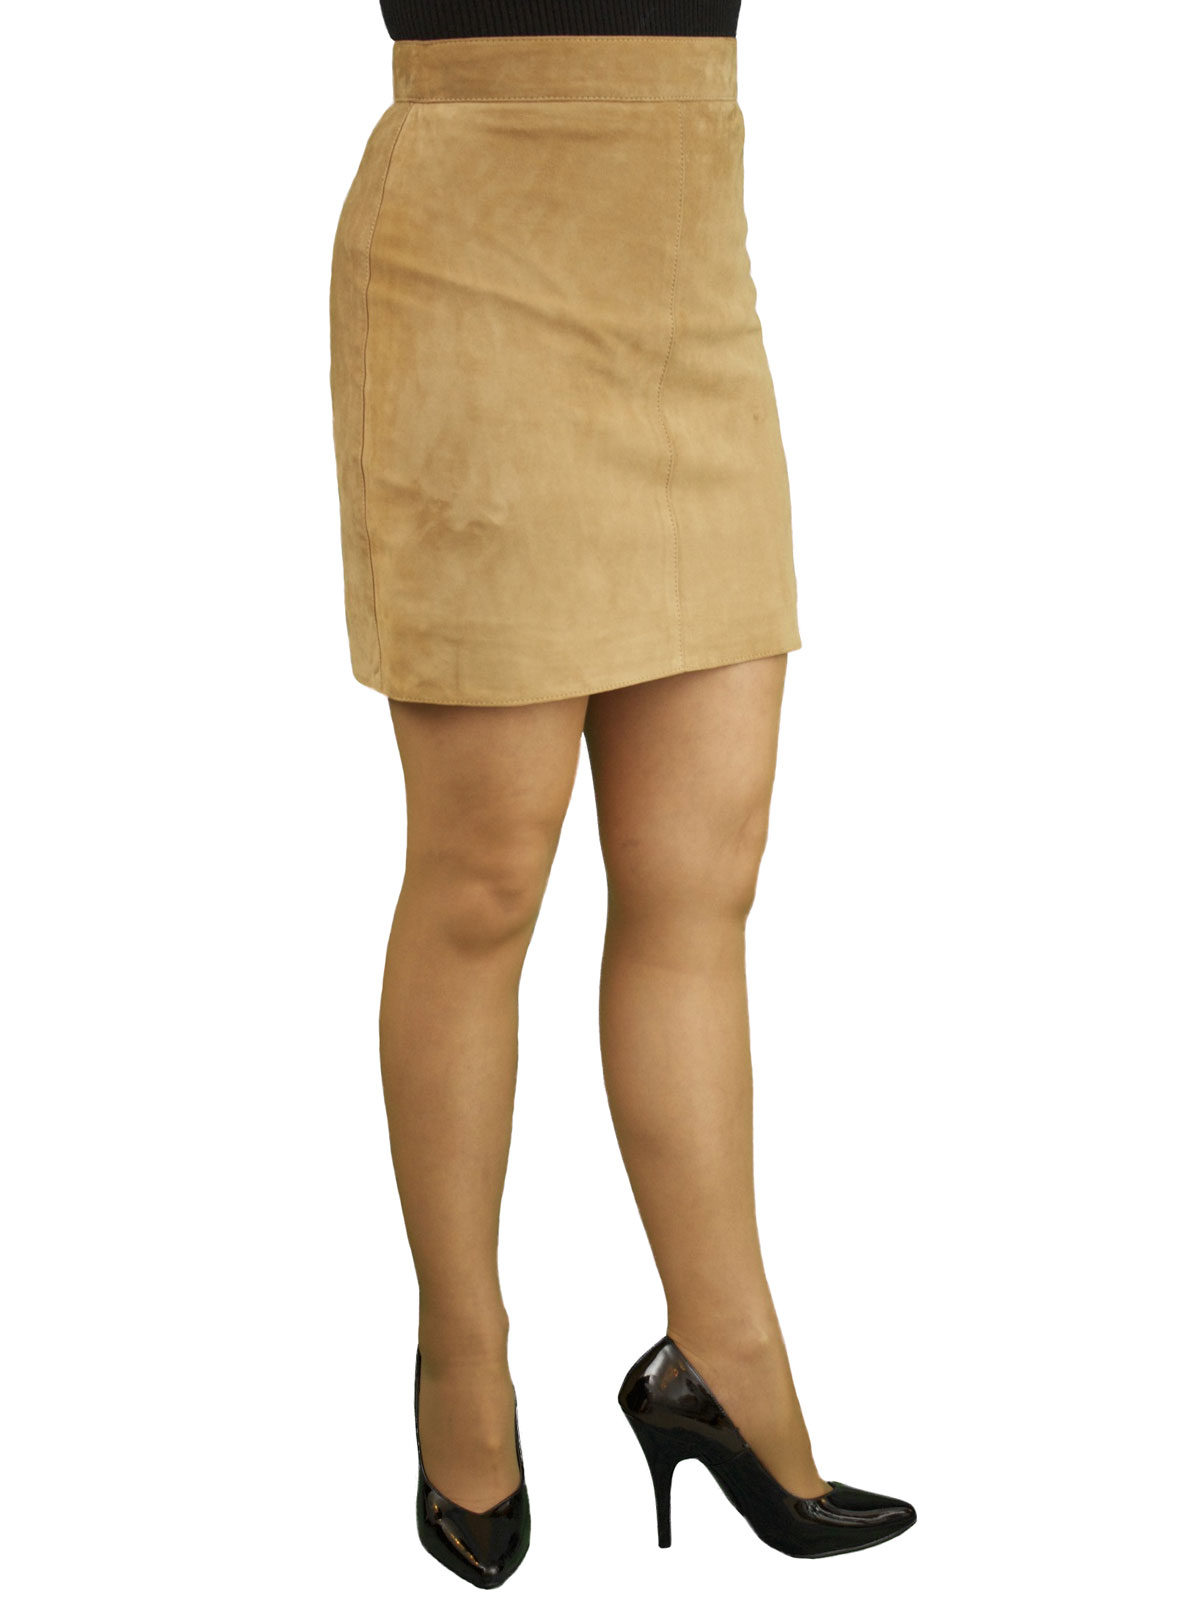 Tan Suede Mini Skirt